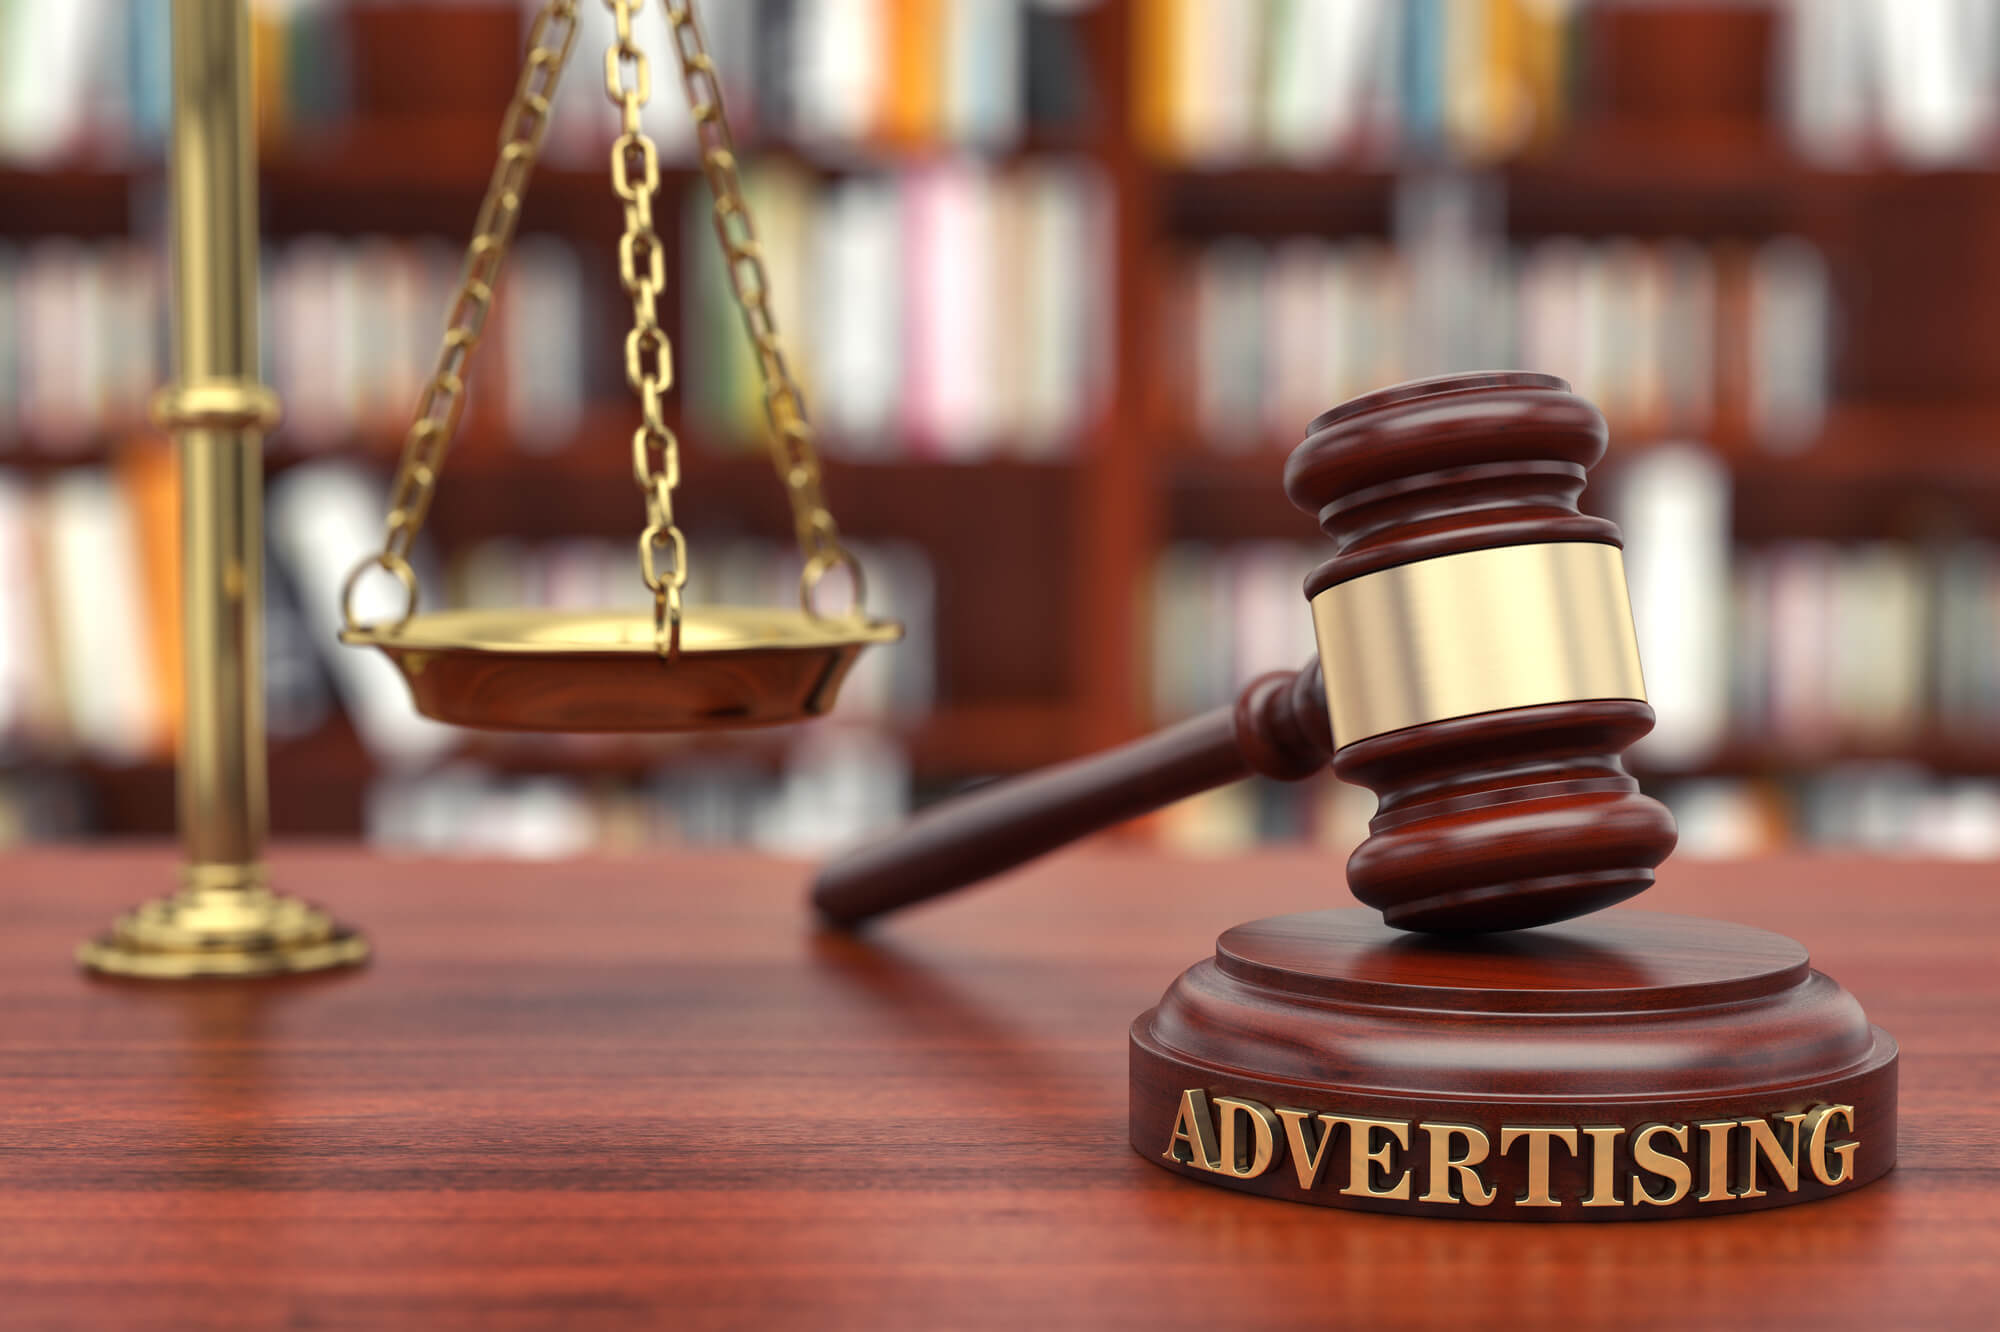 Law Firm Ad Guide: What Should You Be Advertising as a Lawyer?